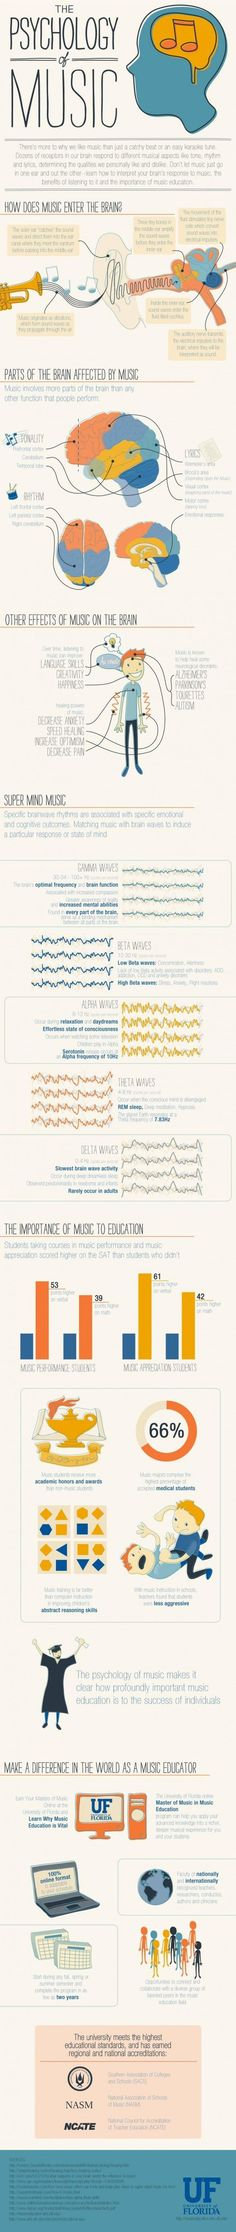 The Psychology of Music -- the importance of marketing lessons back to the parents of your students!  Great reminder. Music lessons #music